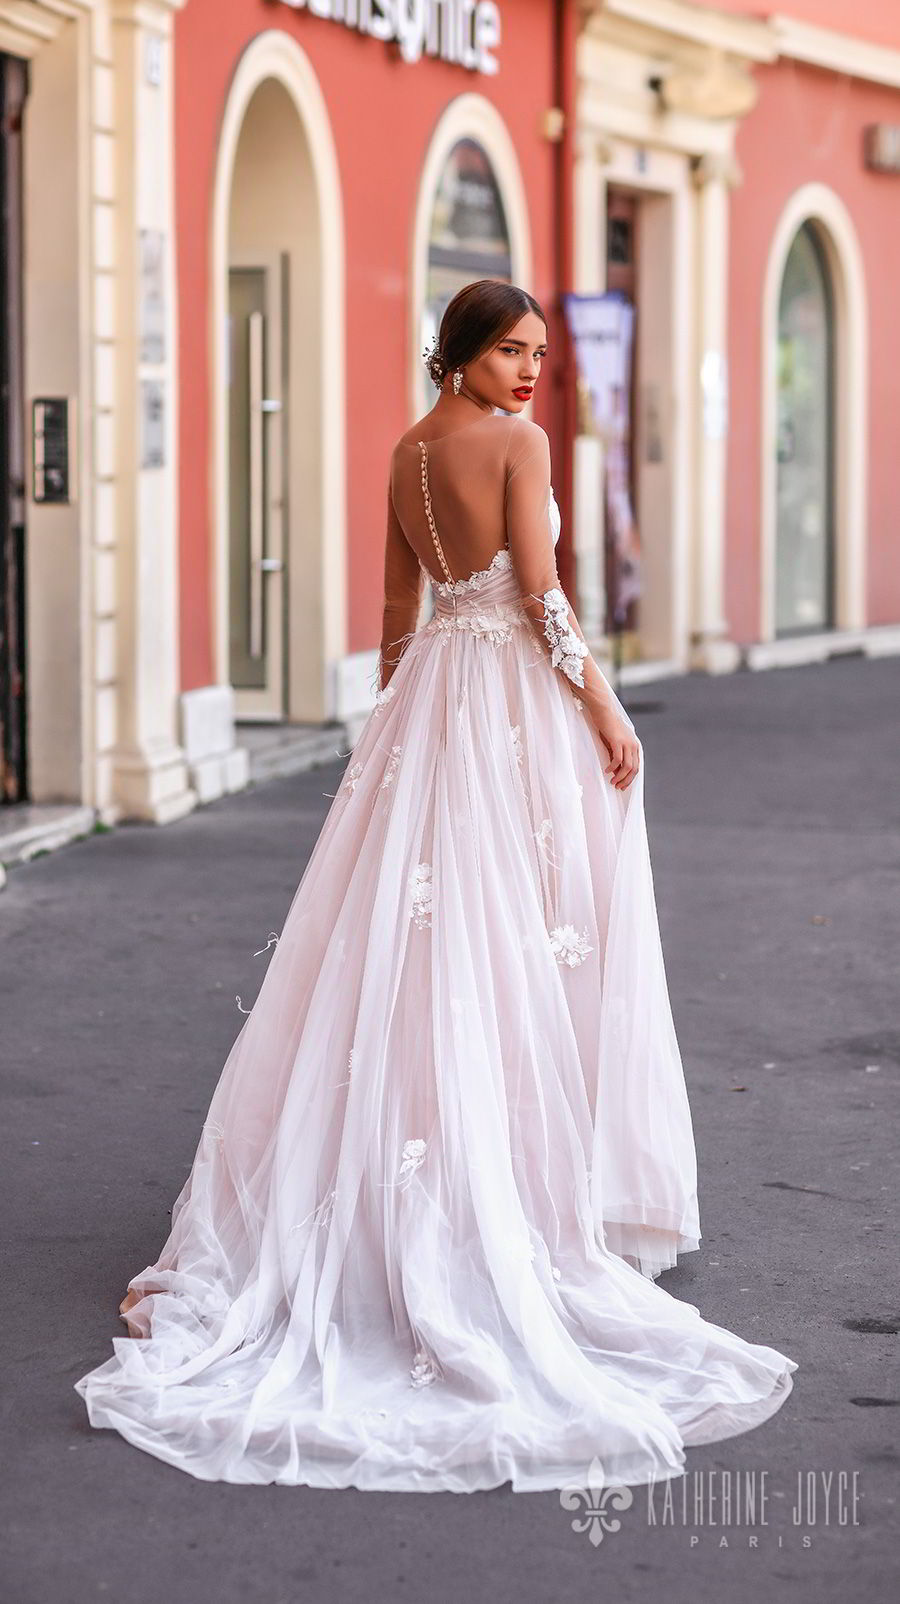 katherine joyce 2018 bridal sheer long sleeves illusion bateau strapless sweetheart neckline heavily embellished bodice romantic pink a  line wedding dress chapel train (catalina) bv